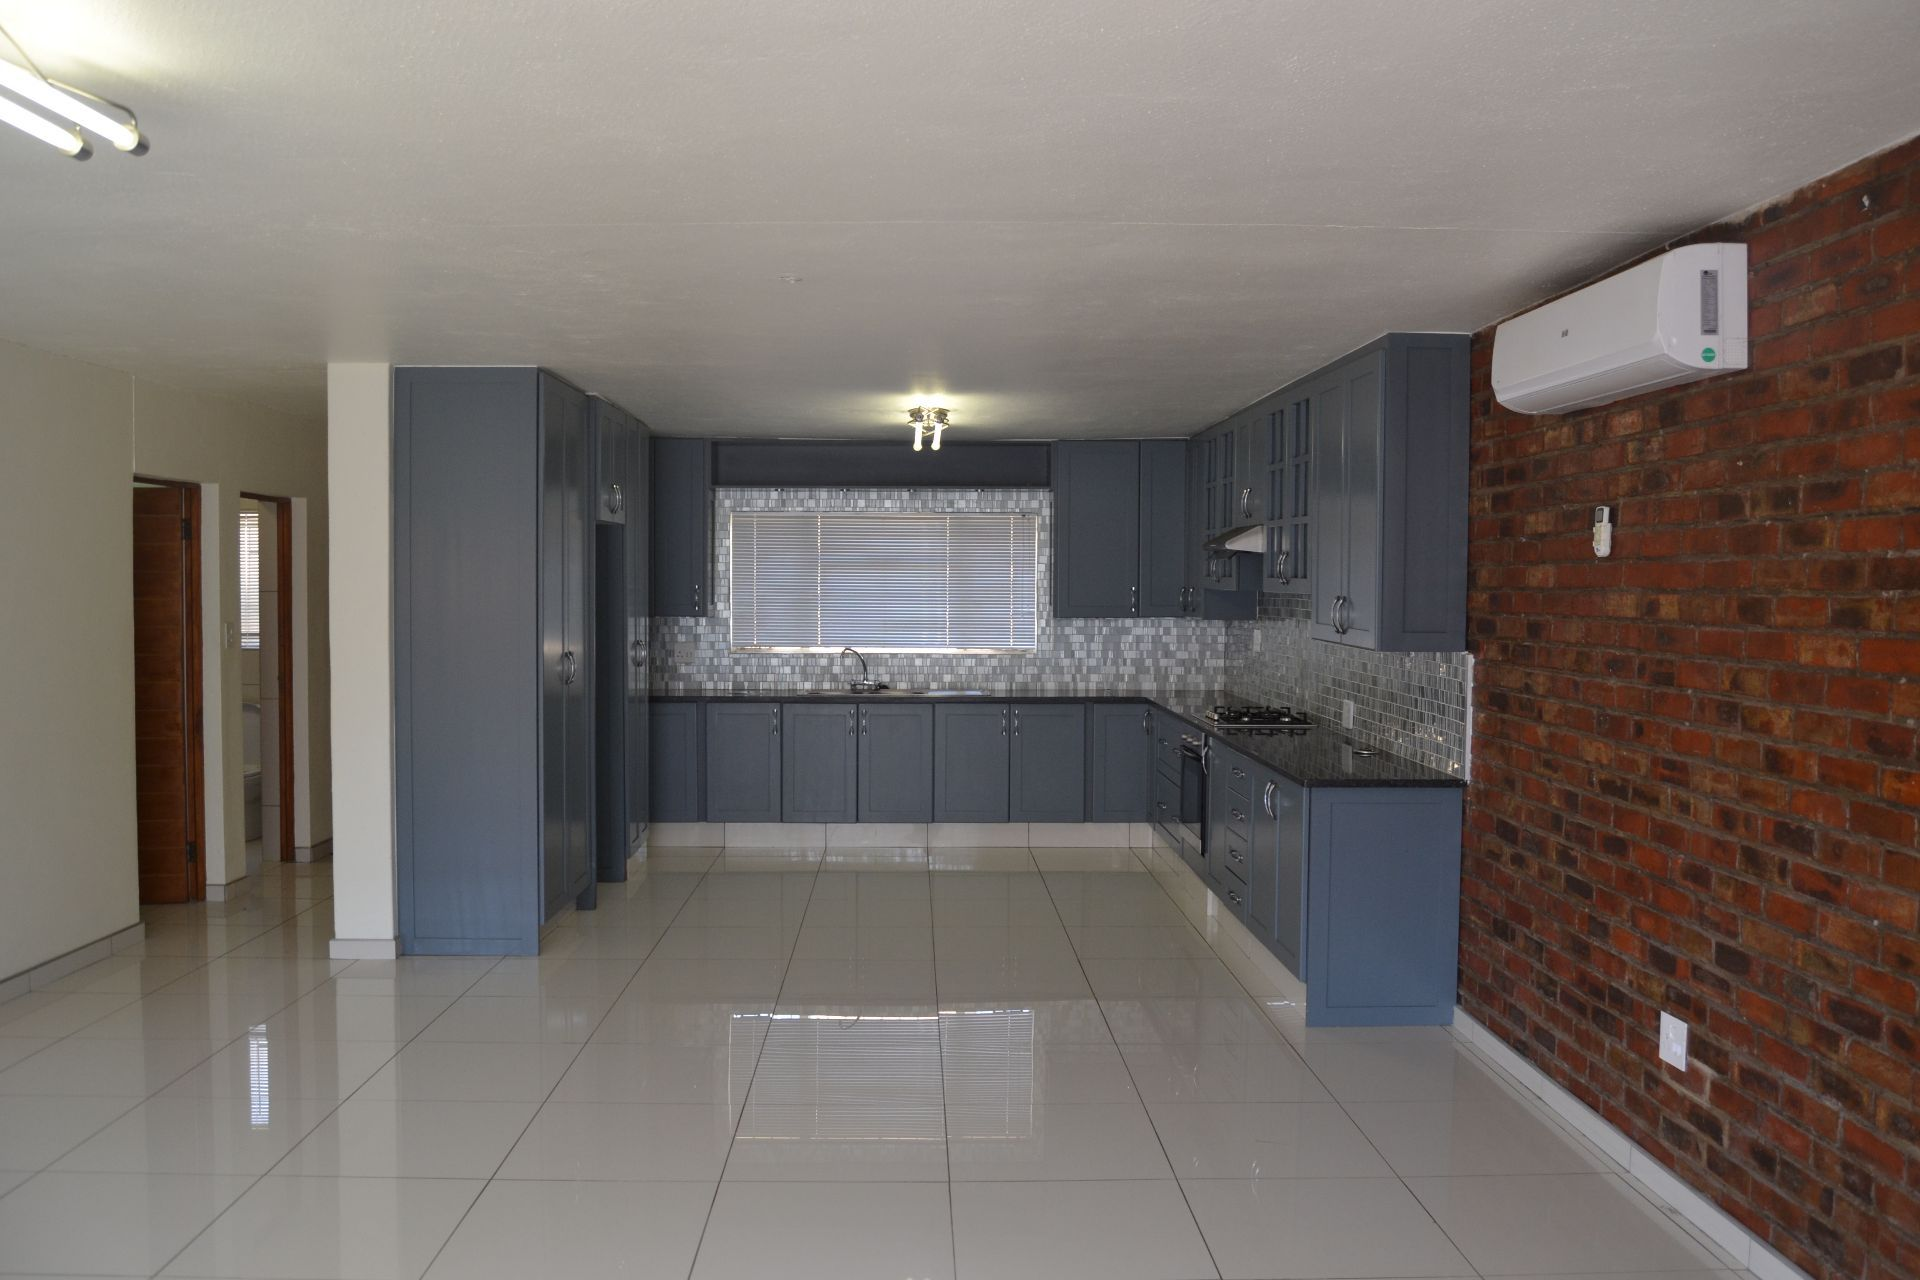 Potchefstroom Central property for sale. Ref No: 13605114. Picture no 2